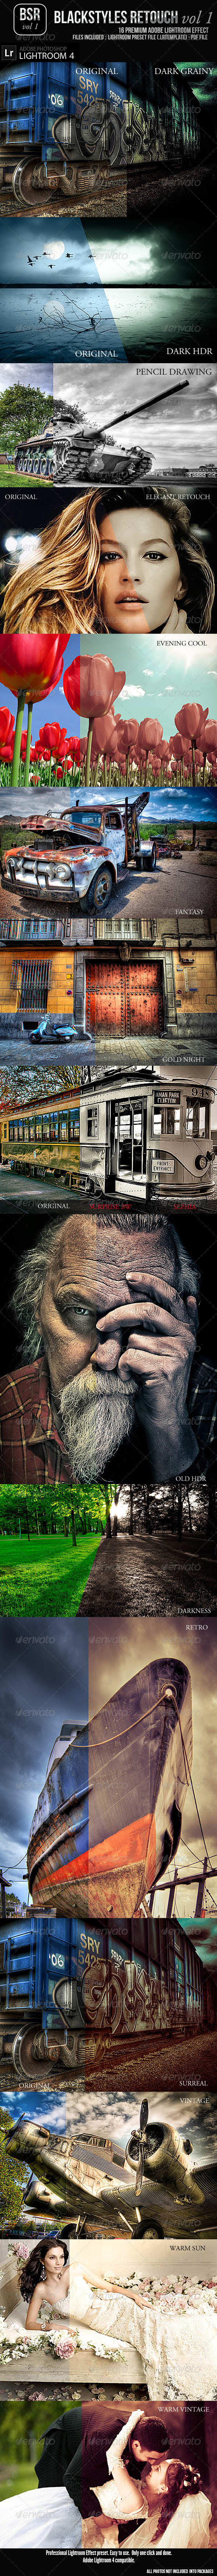 GraphicRiver BlackStyles Retouch-Lightroom Effect Vol 1 4722085